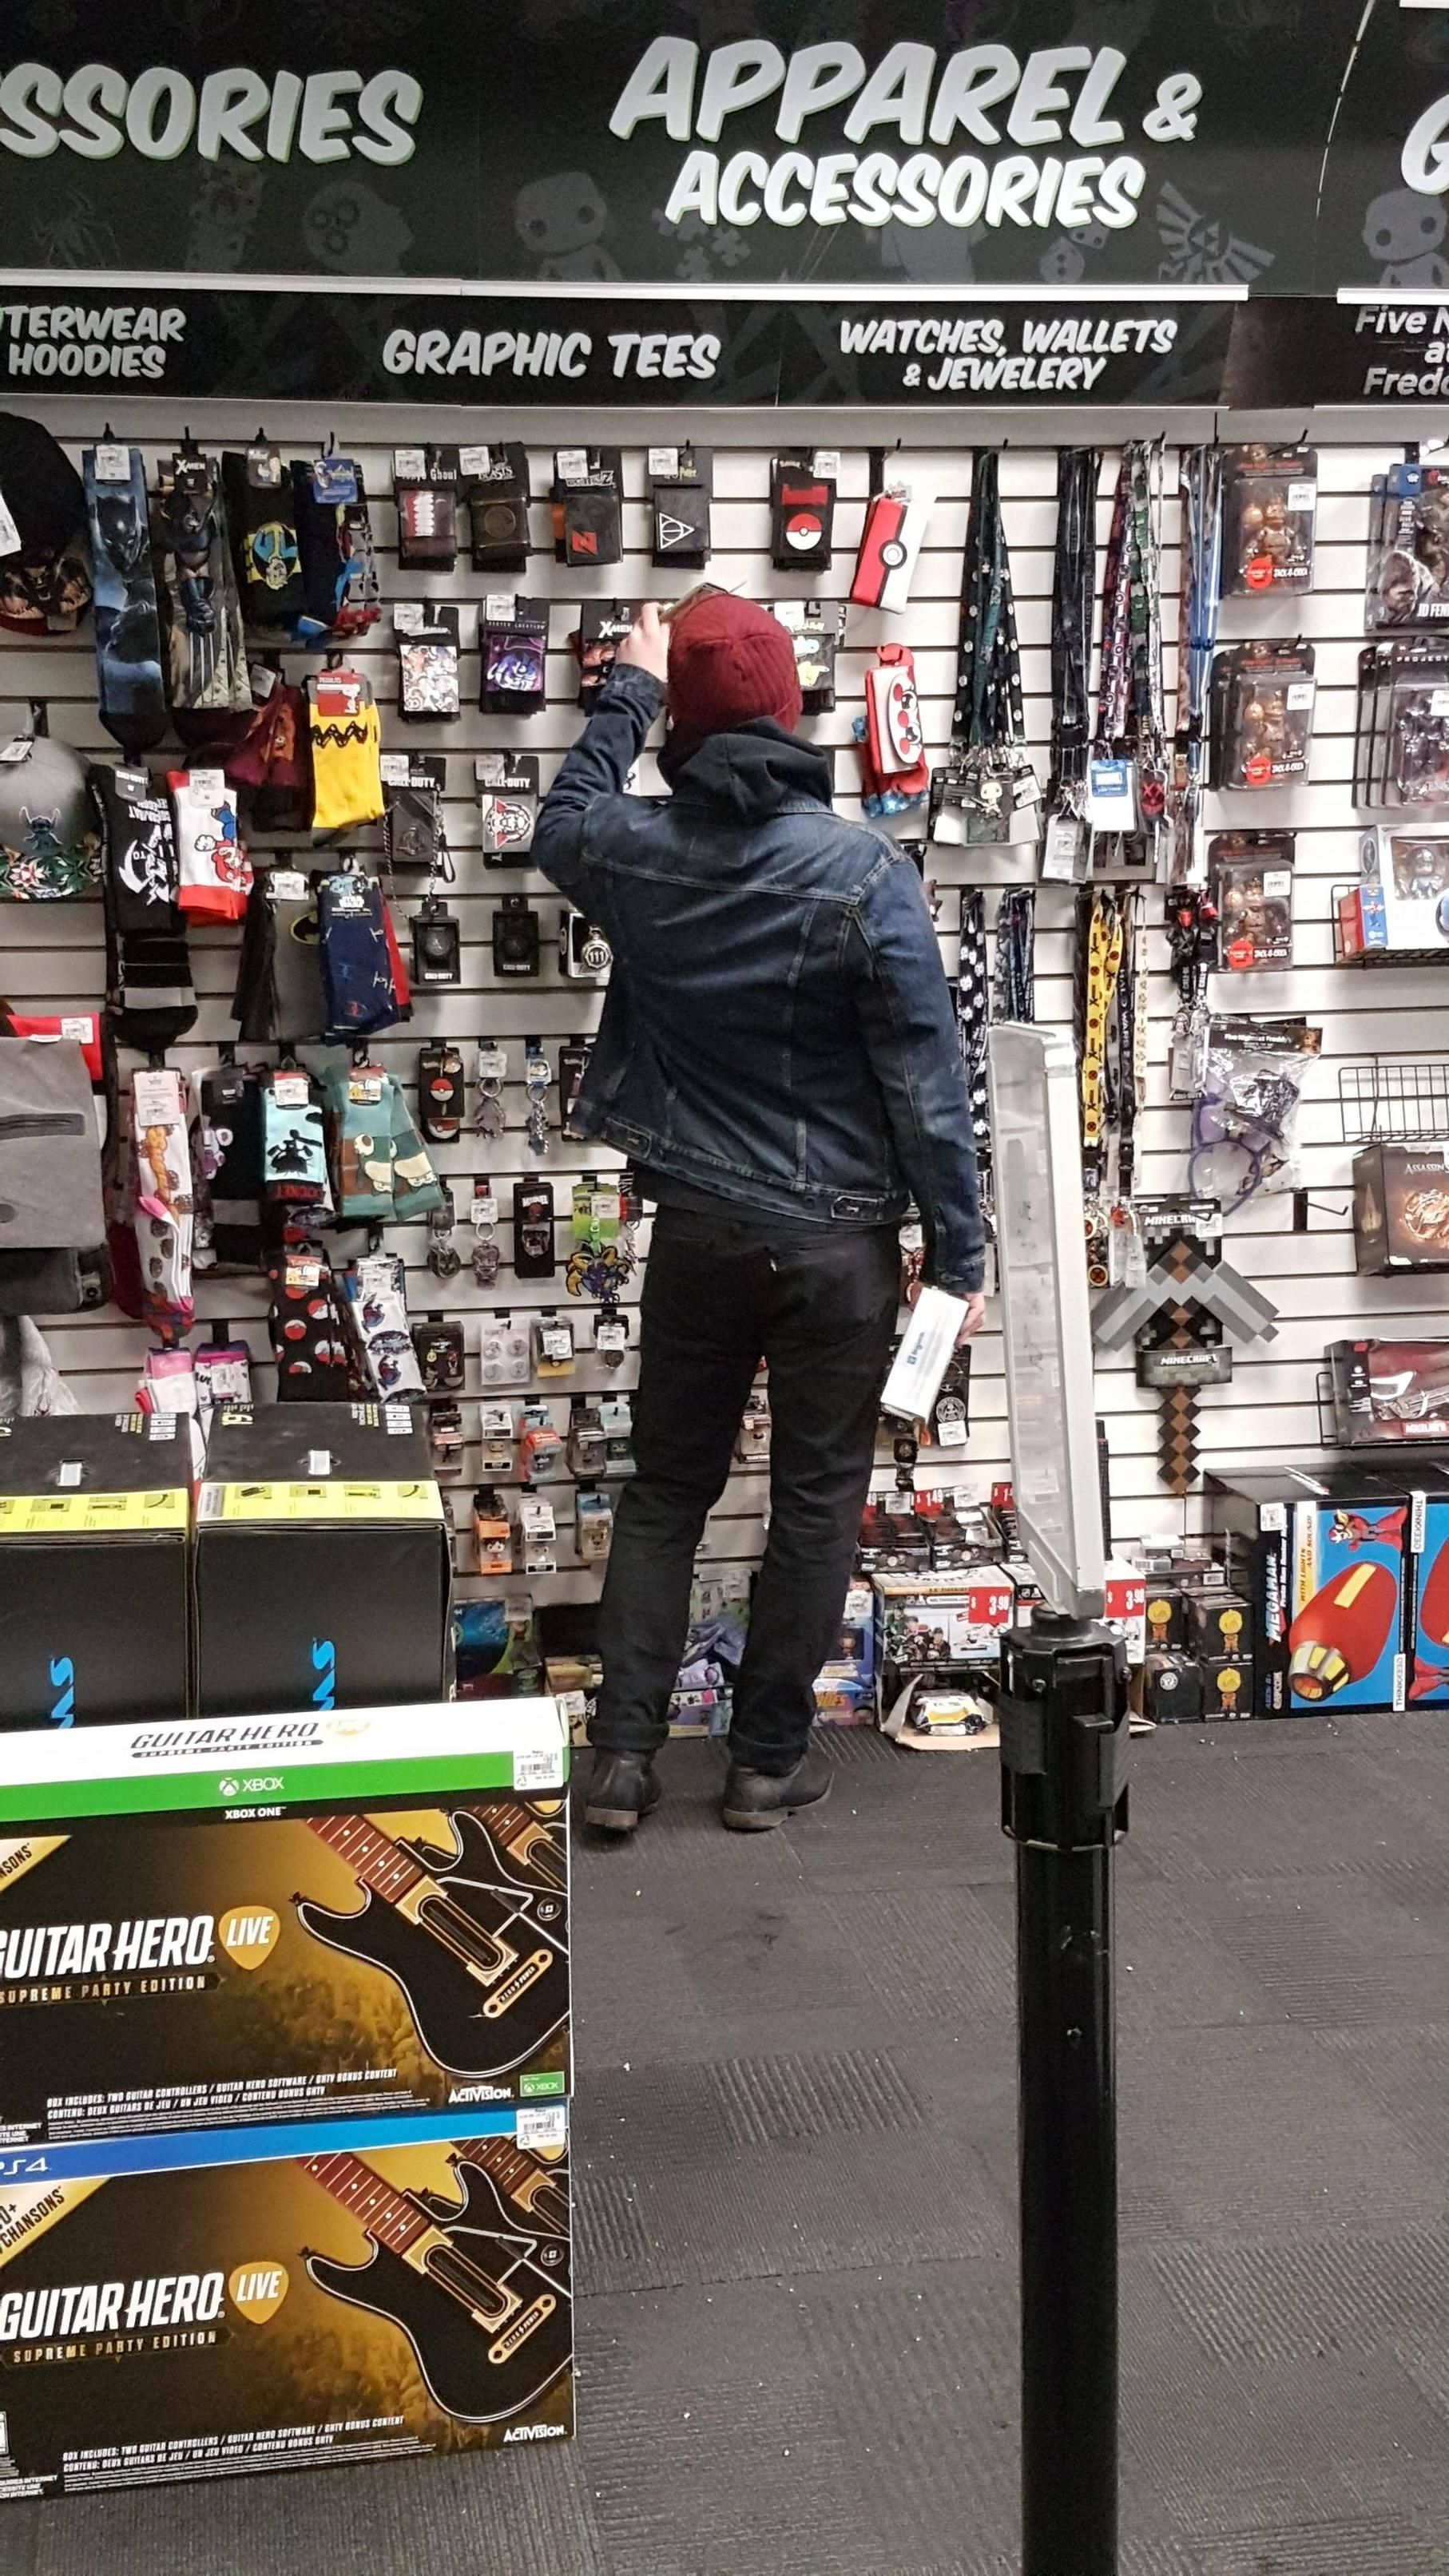 [Image] I'm pretty sure I just saw Delsin at my local Gamestop #Playstation4 #PS4 #Sony #videogames #playstation #gamer #games #gaming